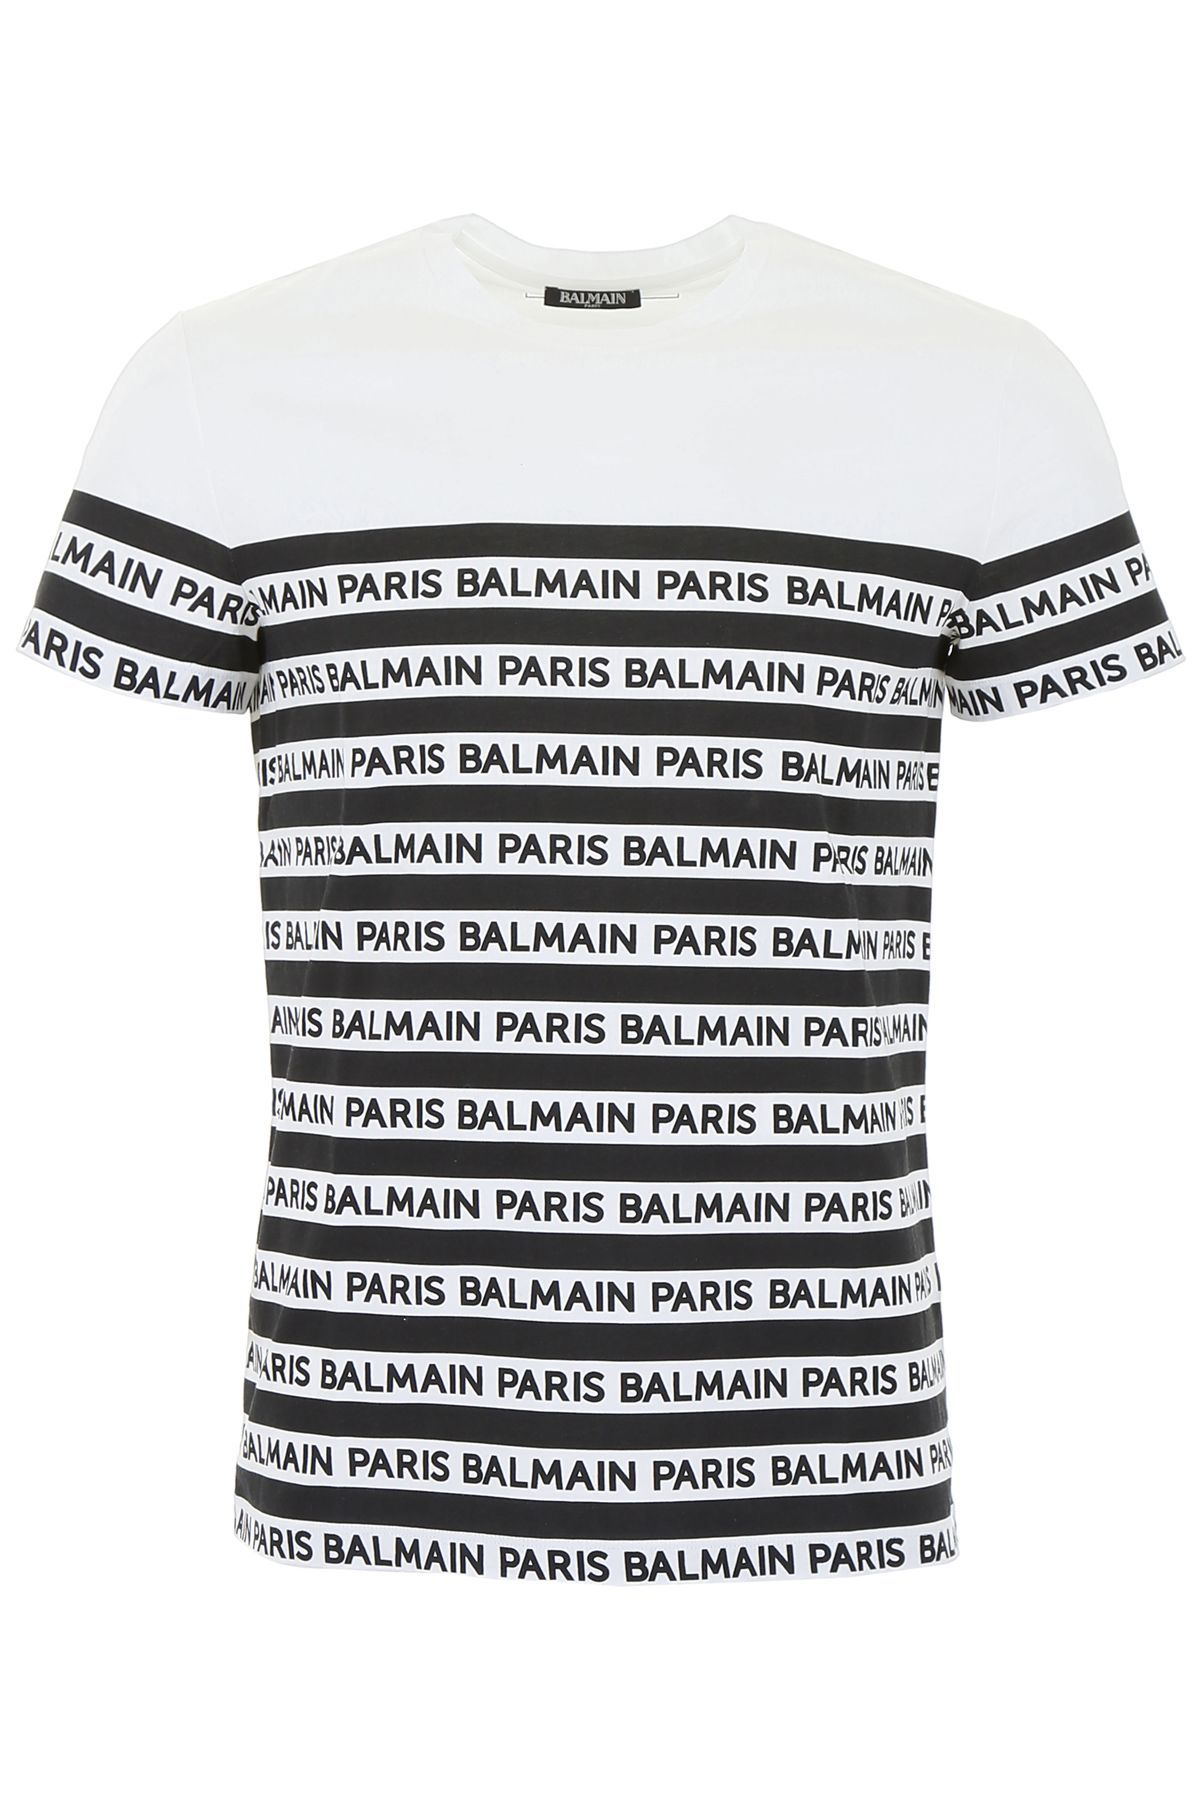 wholesale online uk store meet BALMAIN MARINIÈRE LOGO T-SHIRT. #balmain #cloth | Balmain in ...